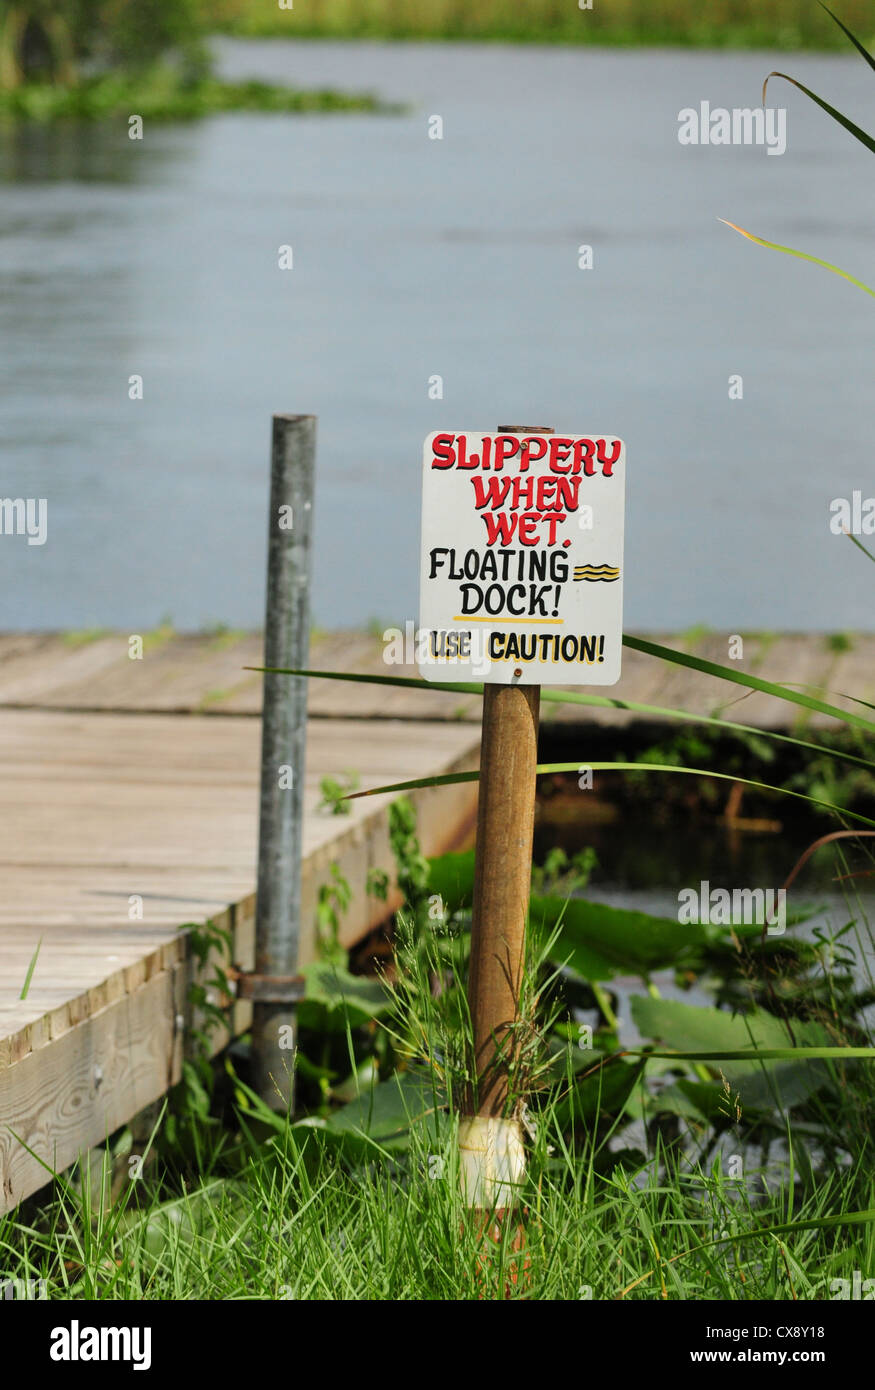 Slippery When Wet sign at dock near pond - Stock Image